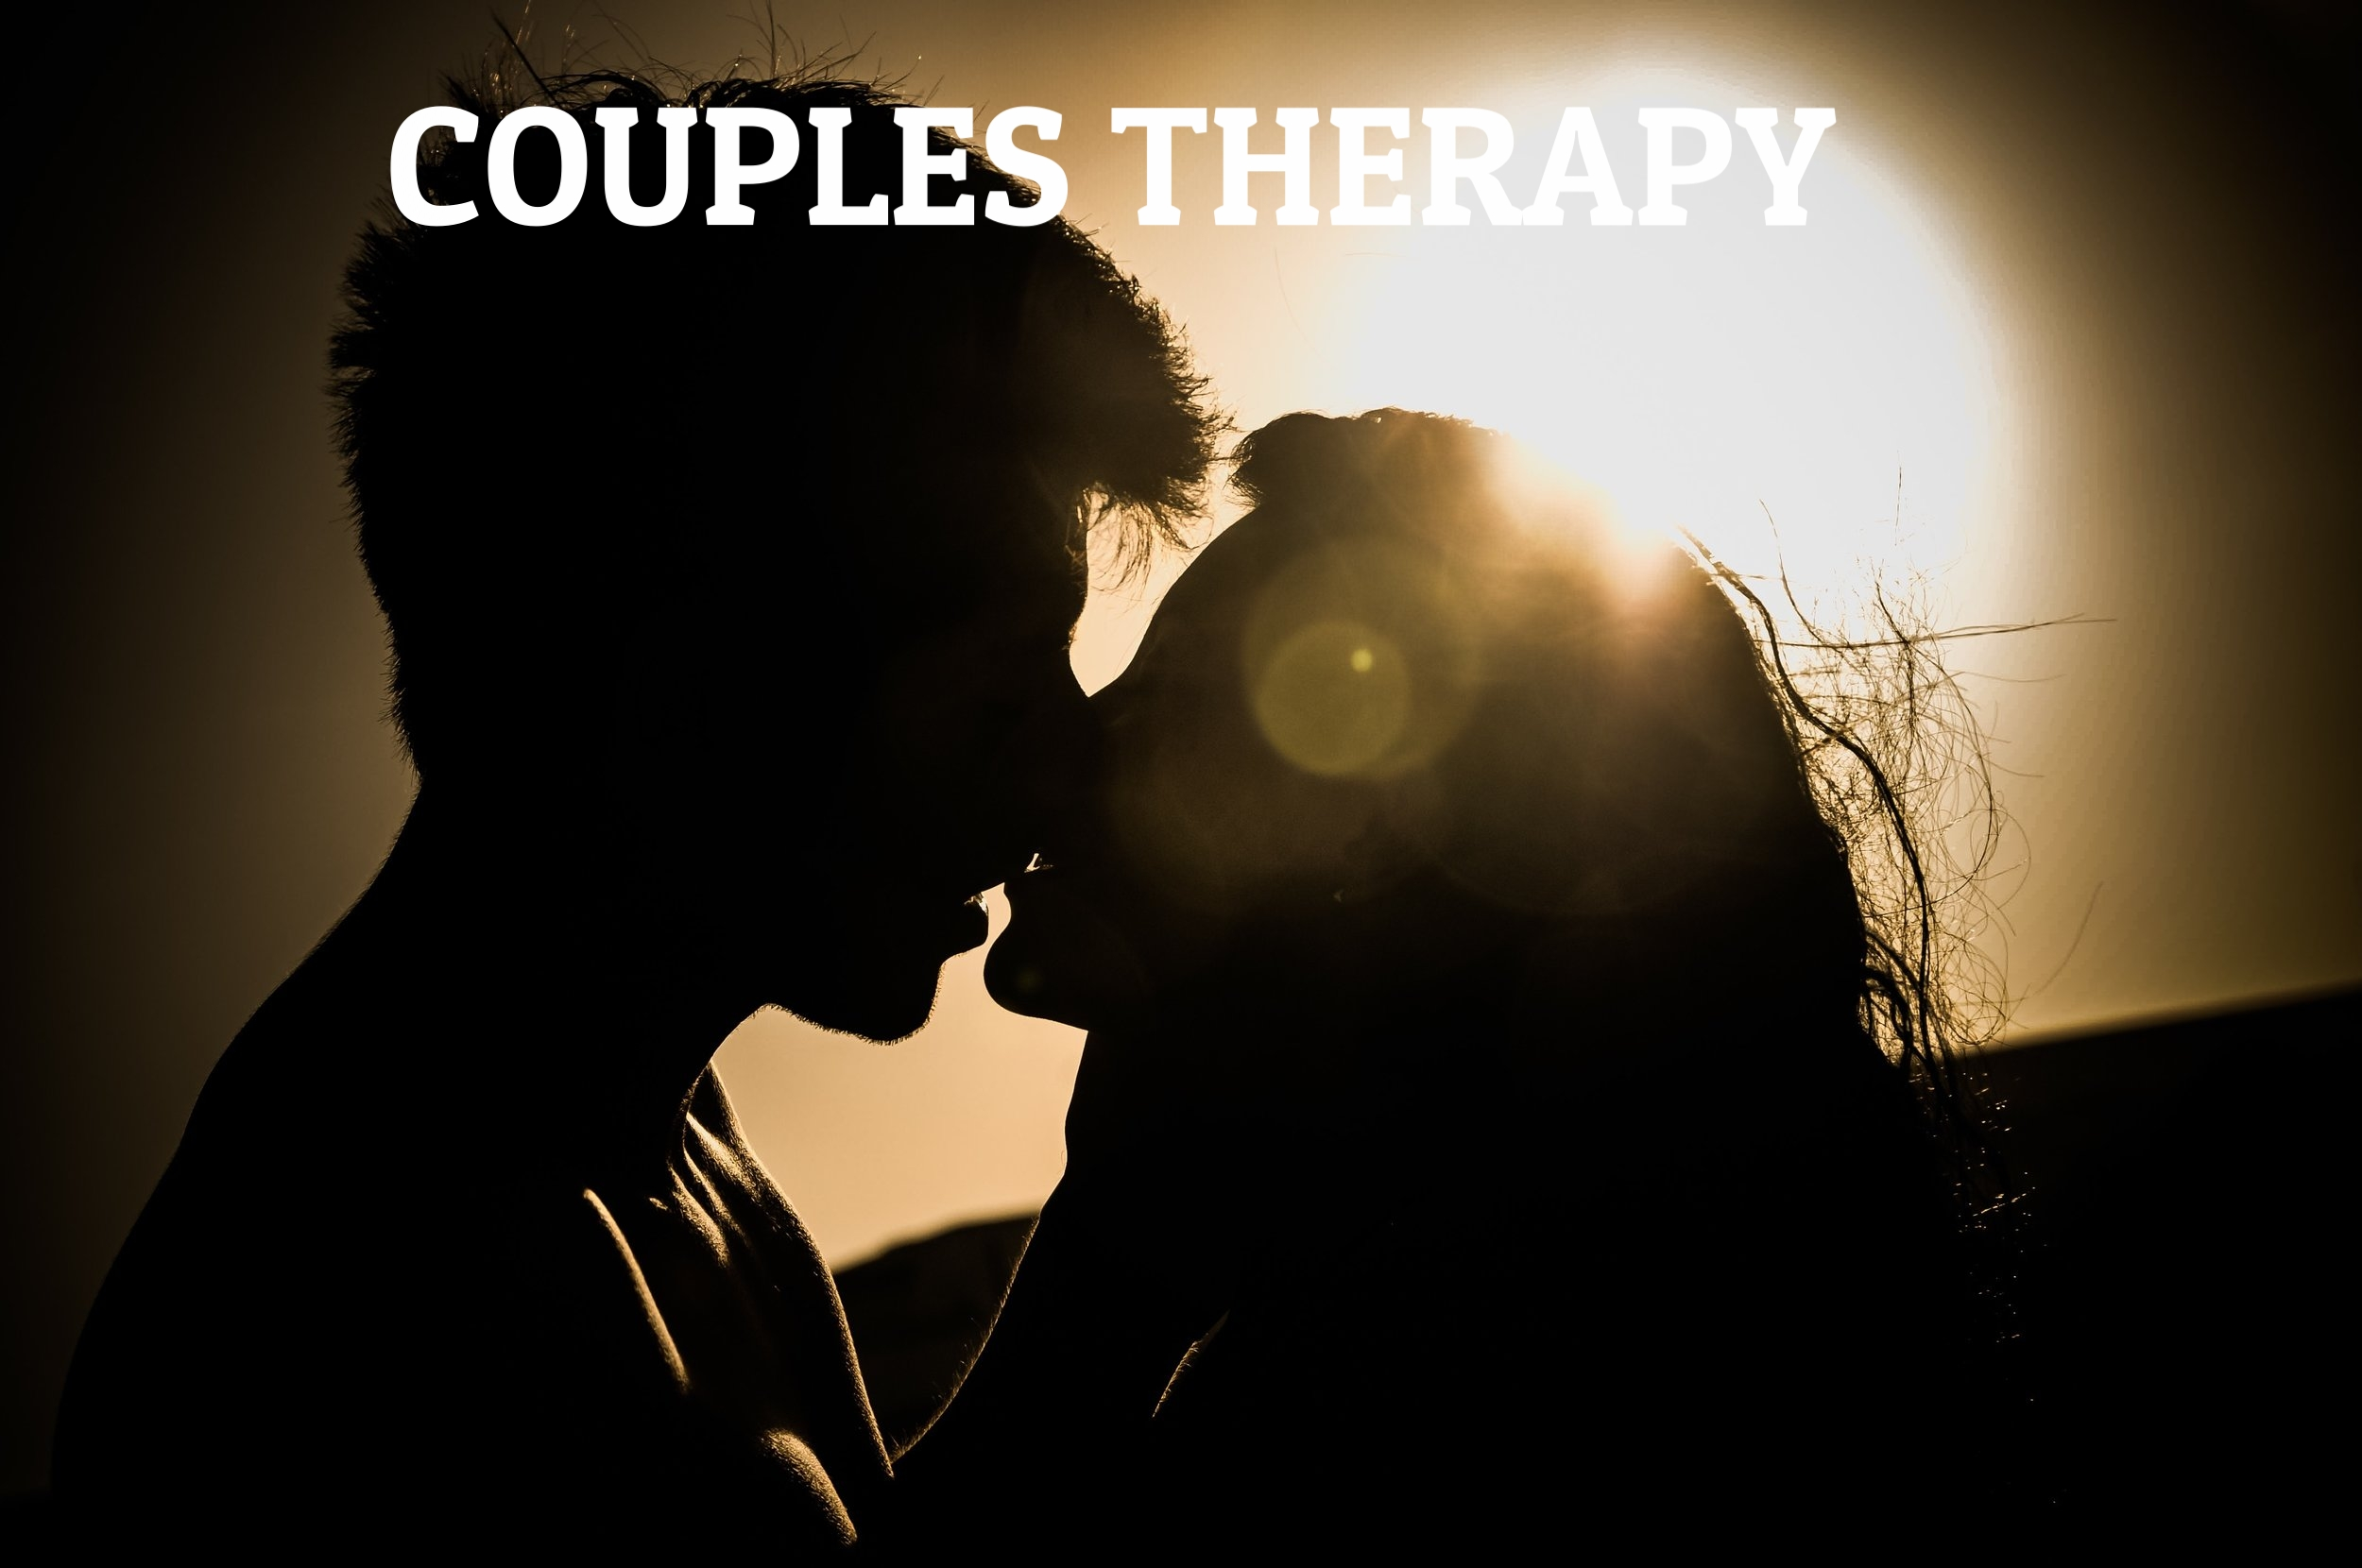 Couples Therapy with Let's Unpack helps you and your partner to communicate more effectively and navigate difficult issues.  Increase connection and intimacy, rebuild trust, and look forward to one another again.